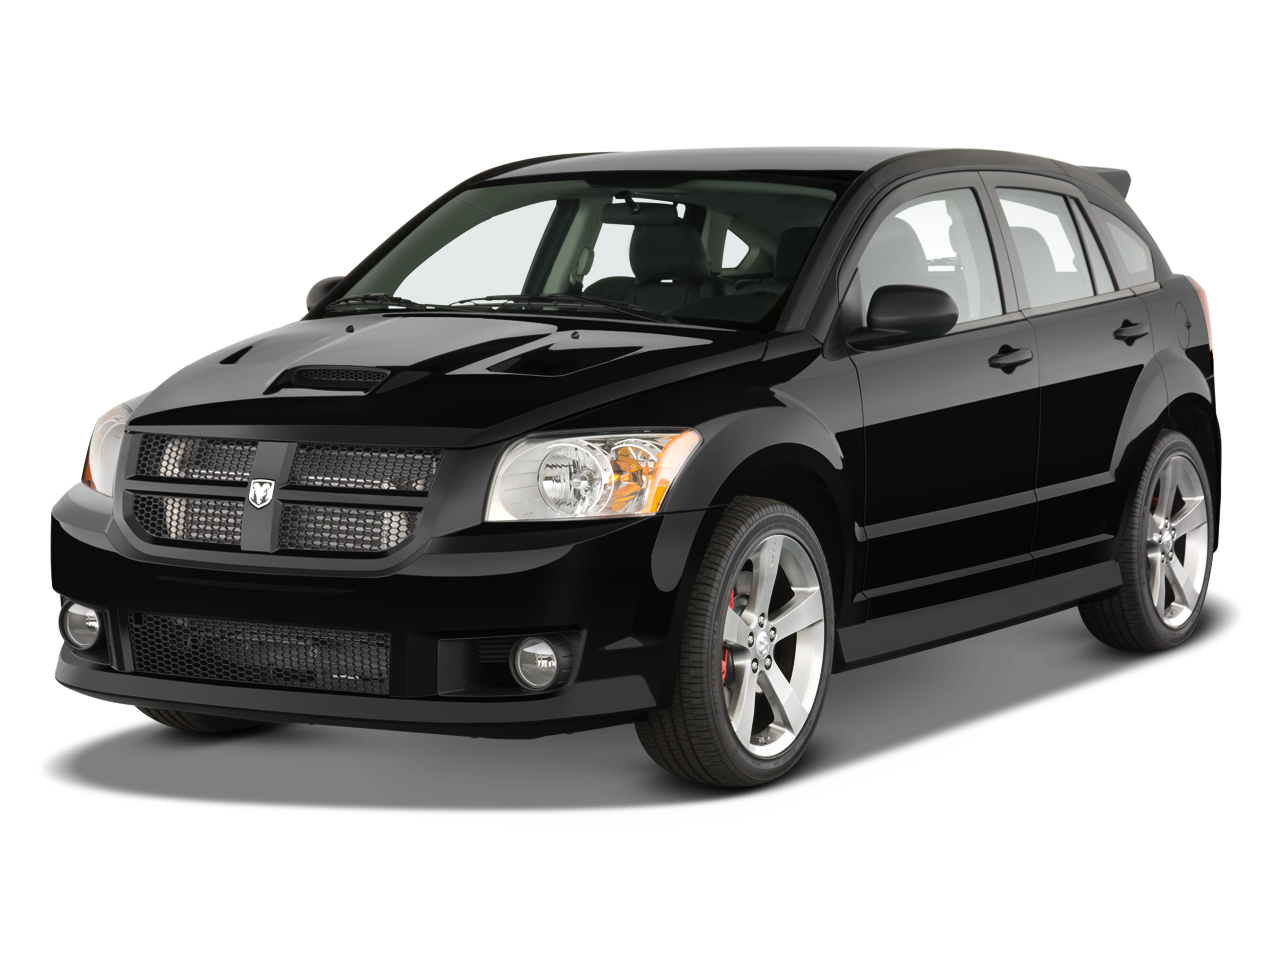 2008 dodge caliber srt4 latest news reviews and. Black Bedroom Furniture Sets. Home Design Ideas